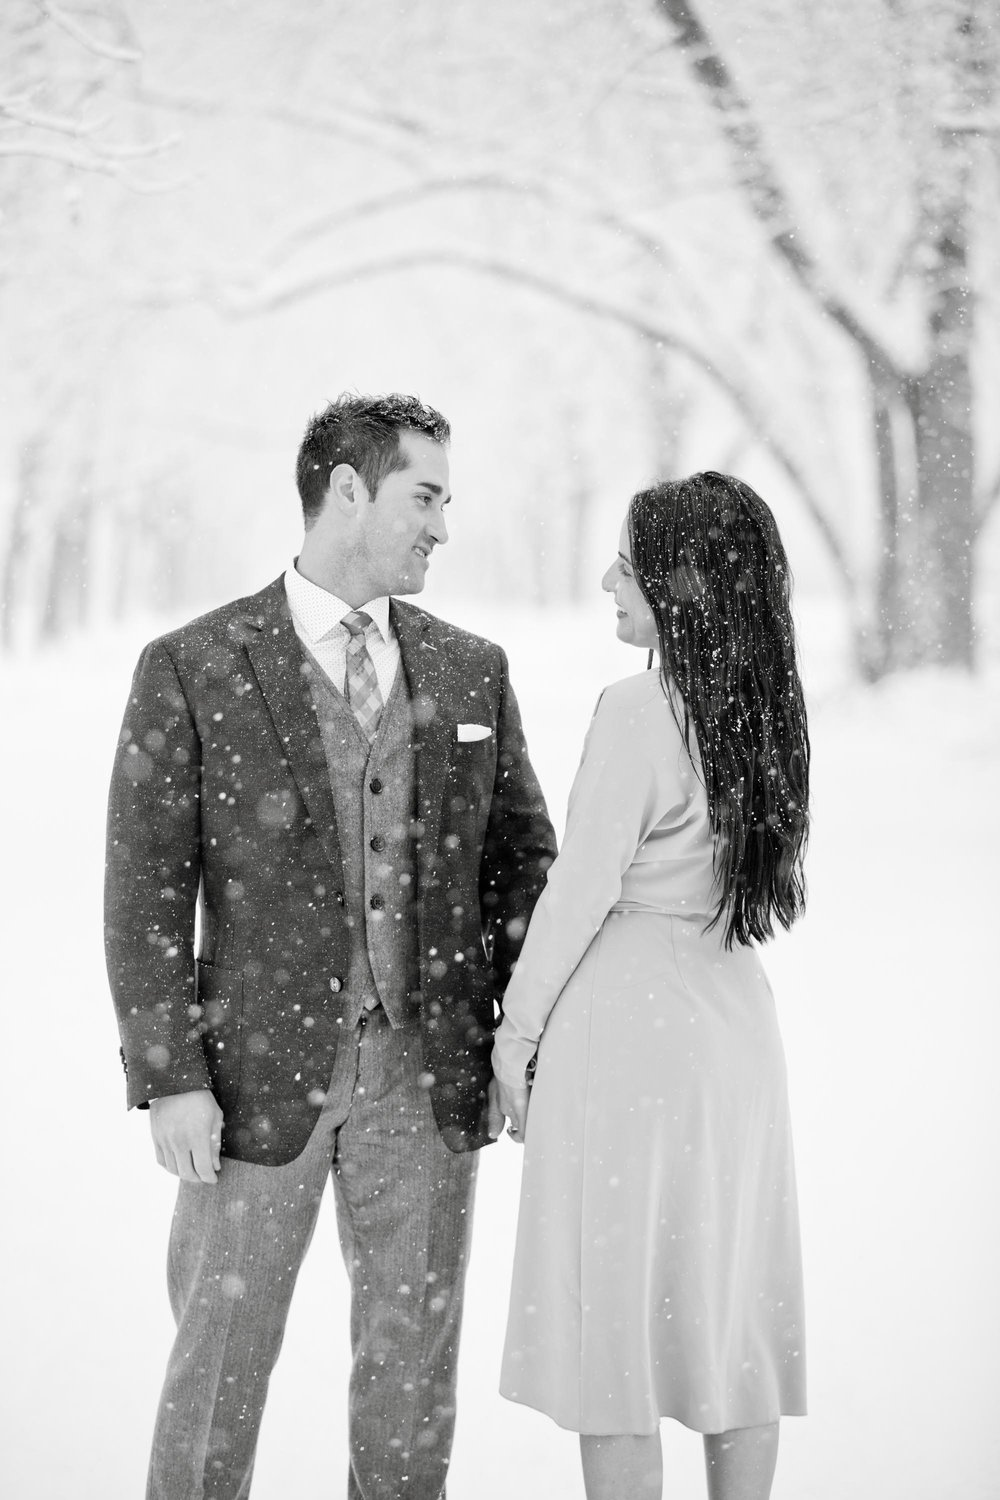 nataschia_wielink_photography_niagara_on_the_lake_engagement_session_vanessa_matt 0012 .JPG